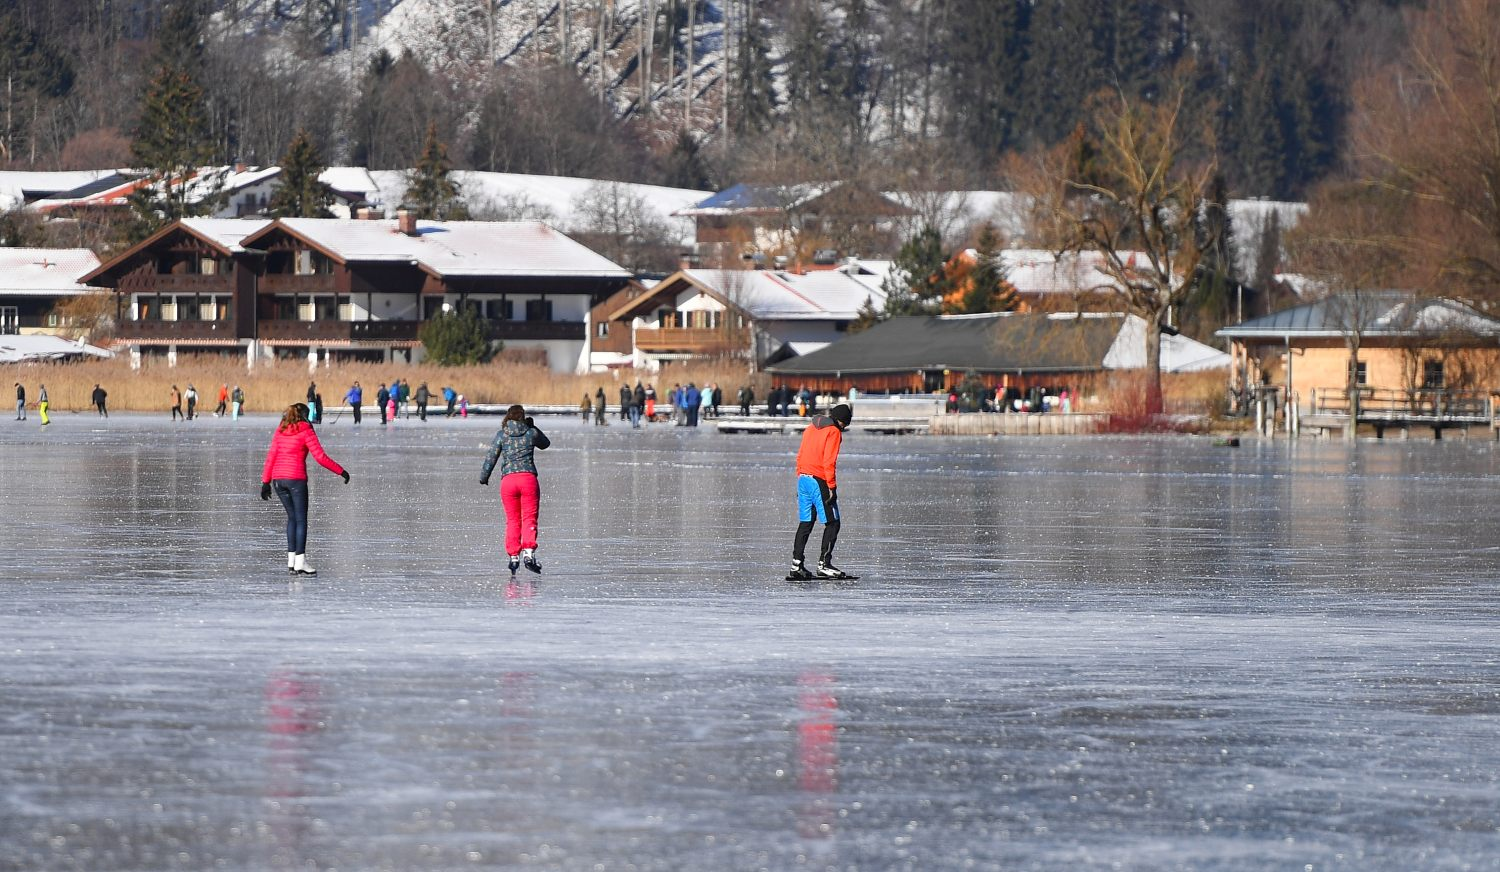 IN PICTURES: Germany embraces cold snap amid warnings over icy waterways